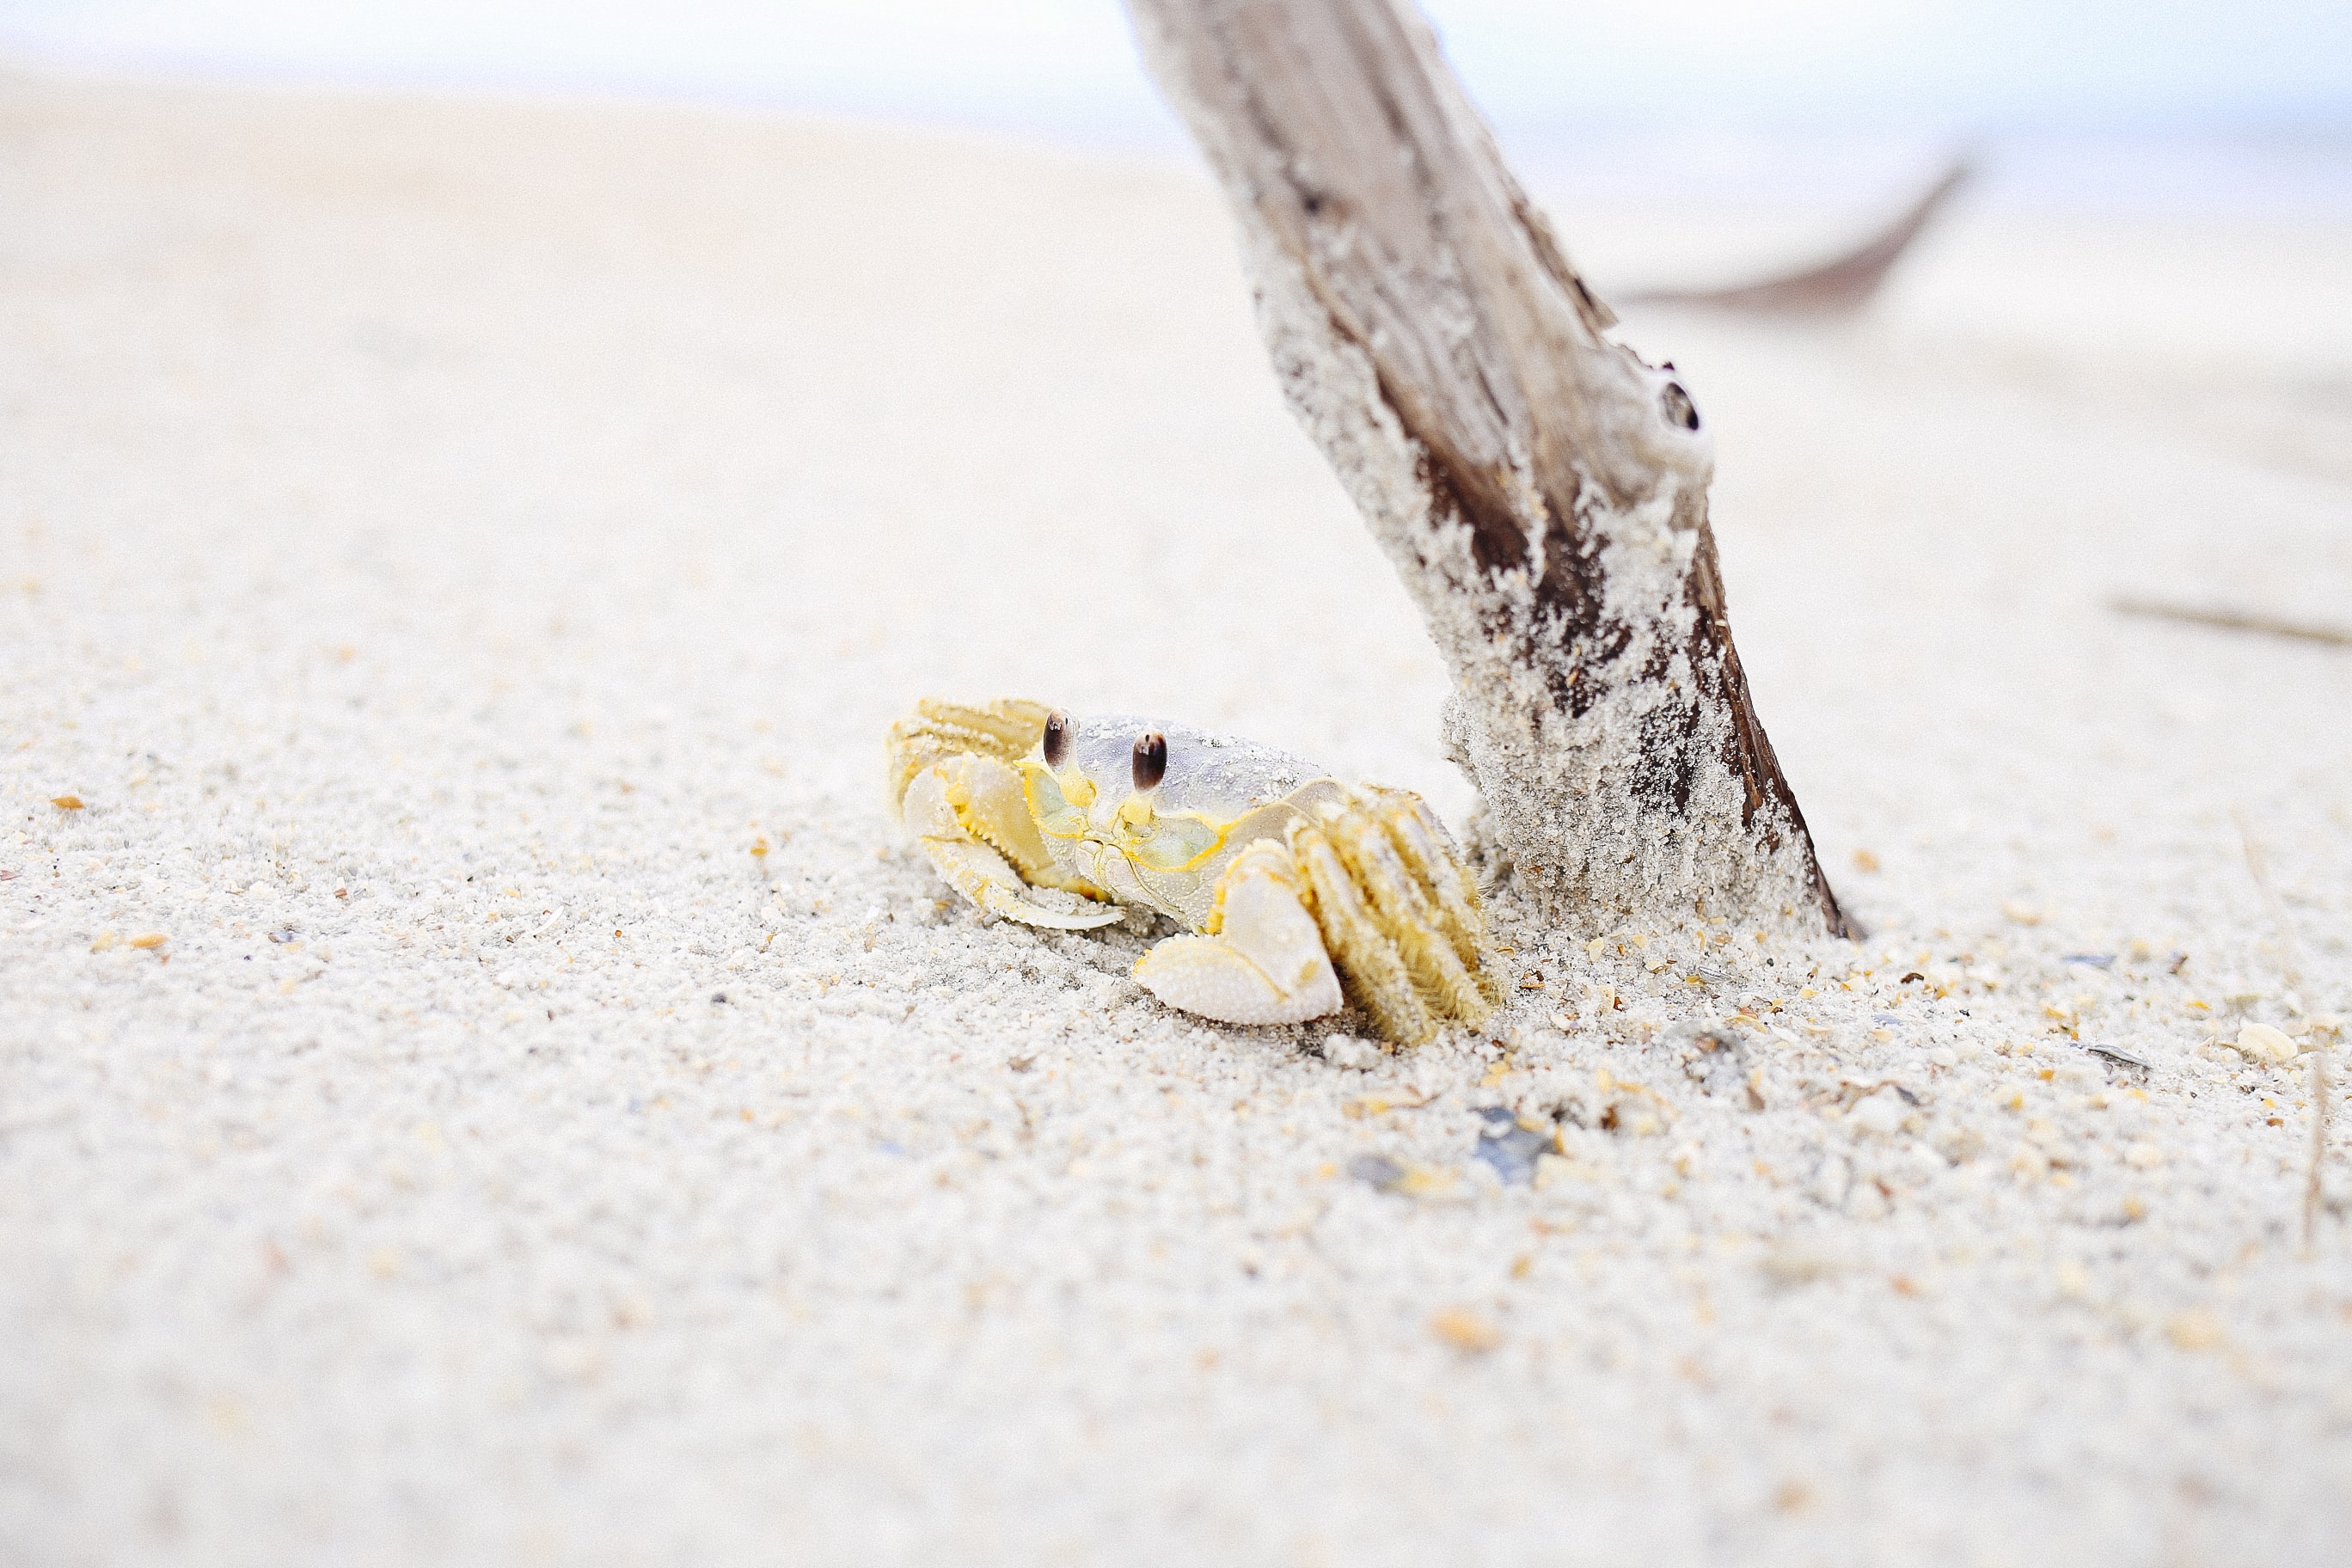 crab near wooden stick on sand